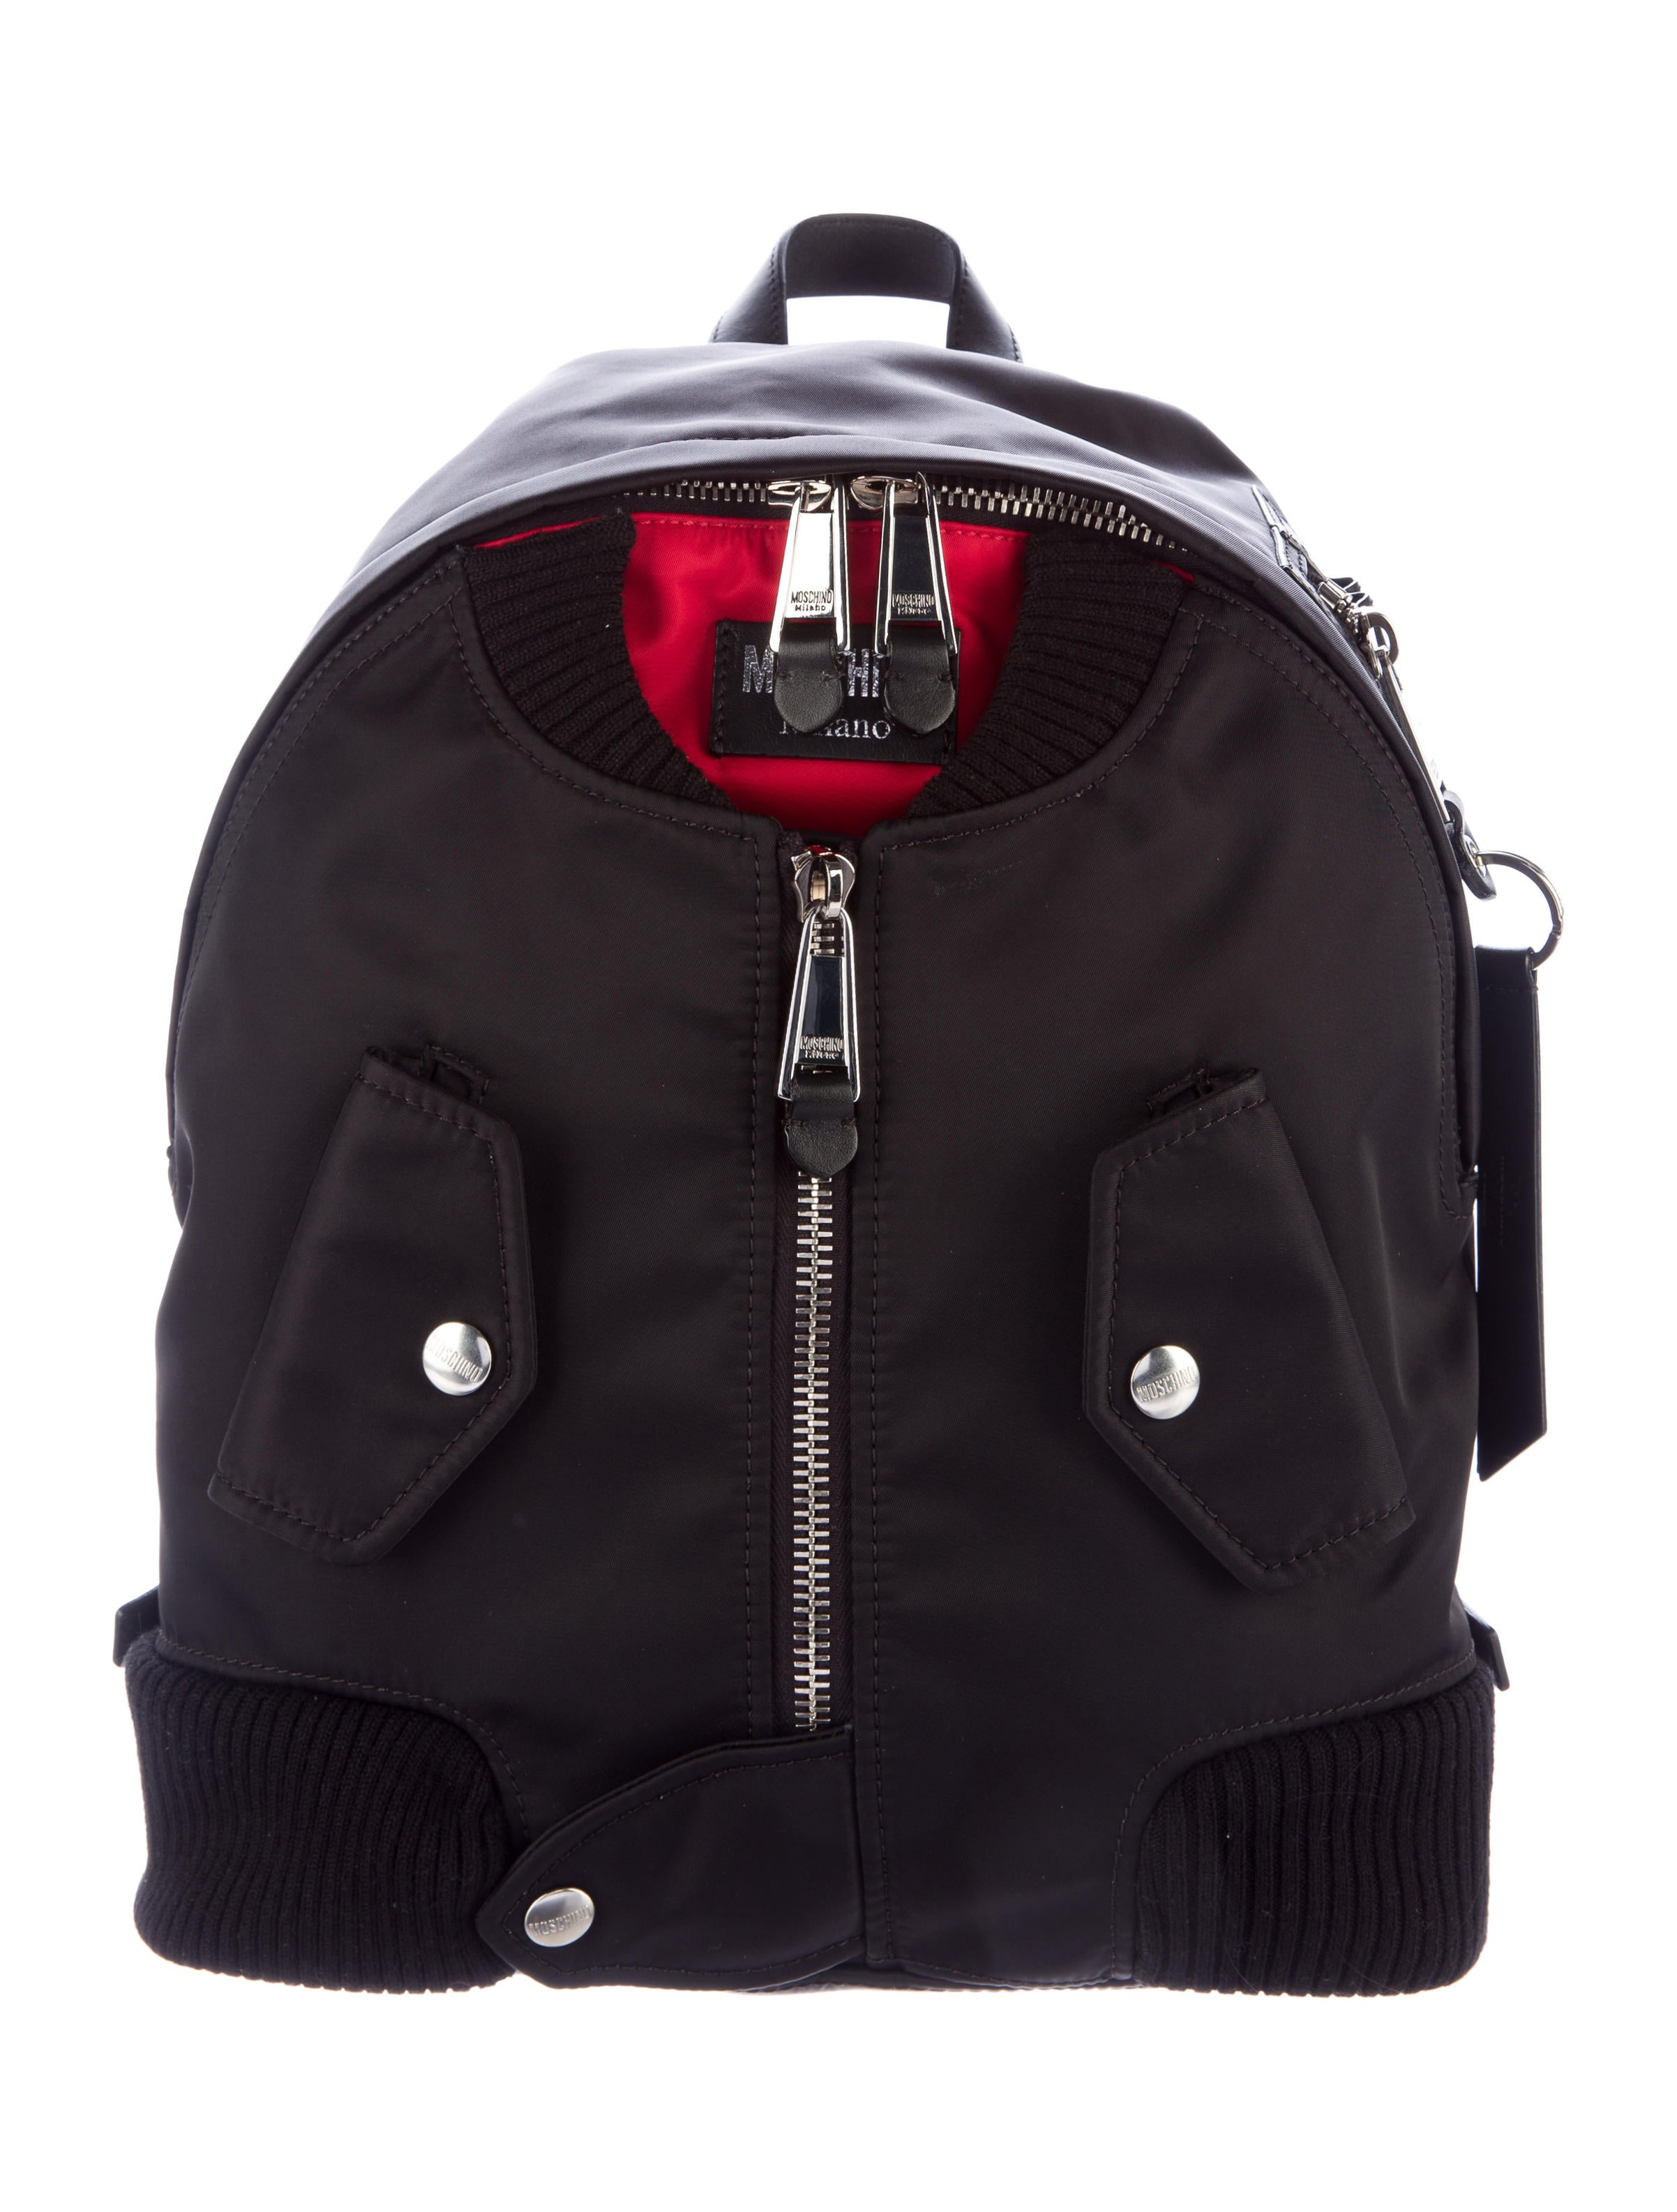 c763f179fcd Moschino Bomber Jacket Backpack w/ Tags - Handbags - MOS27319 | The ...